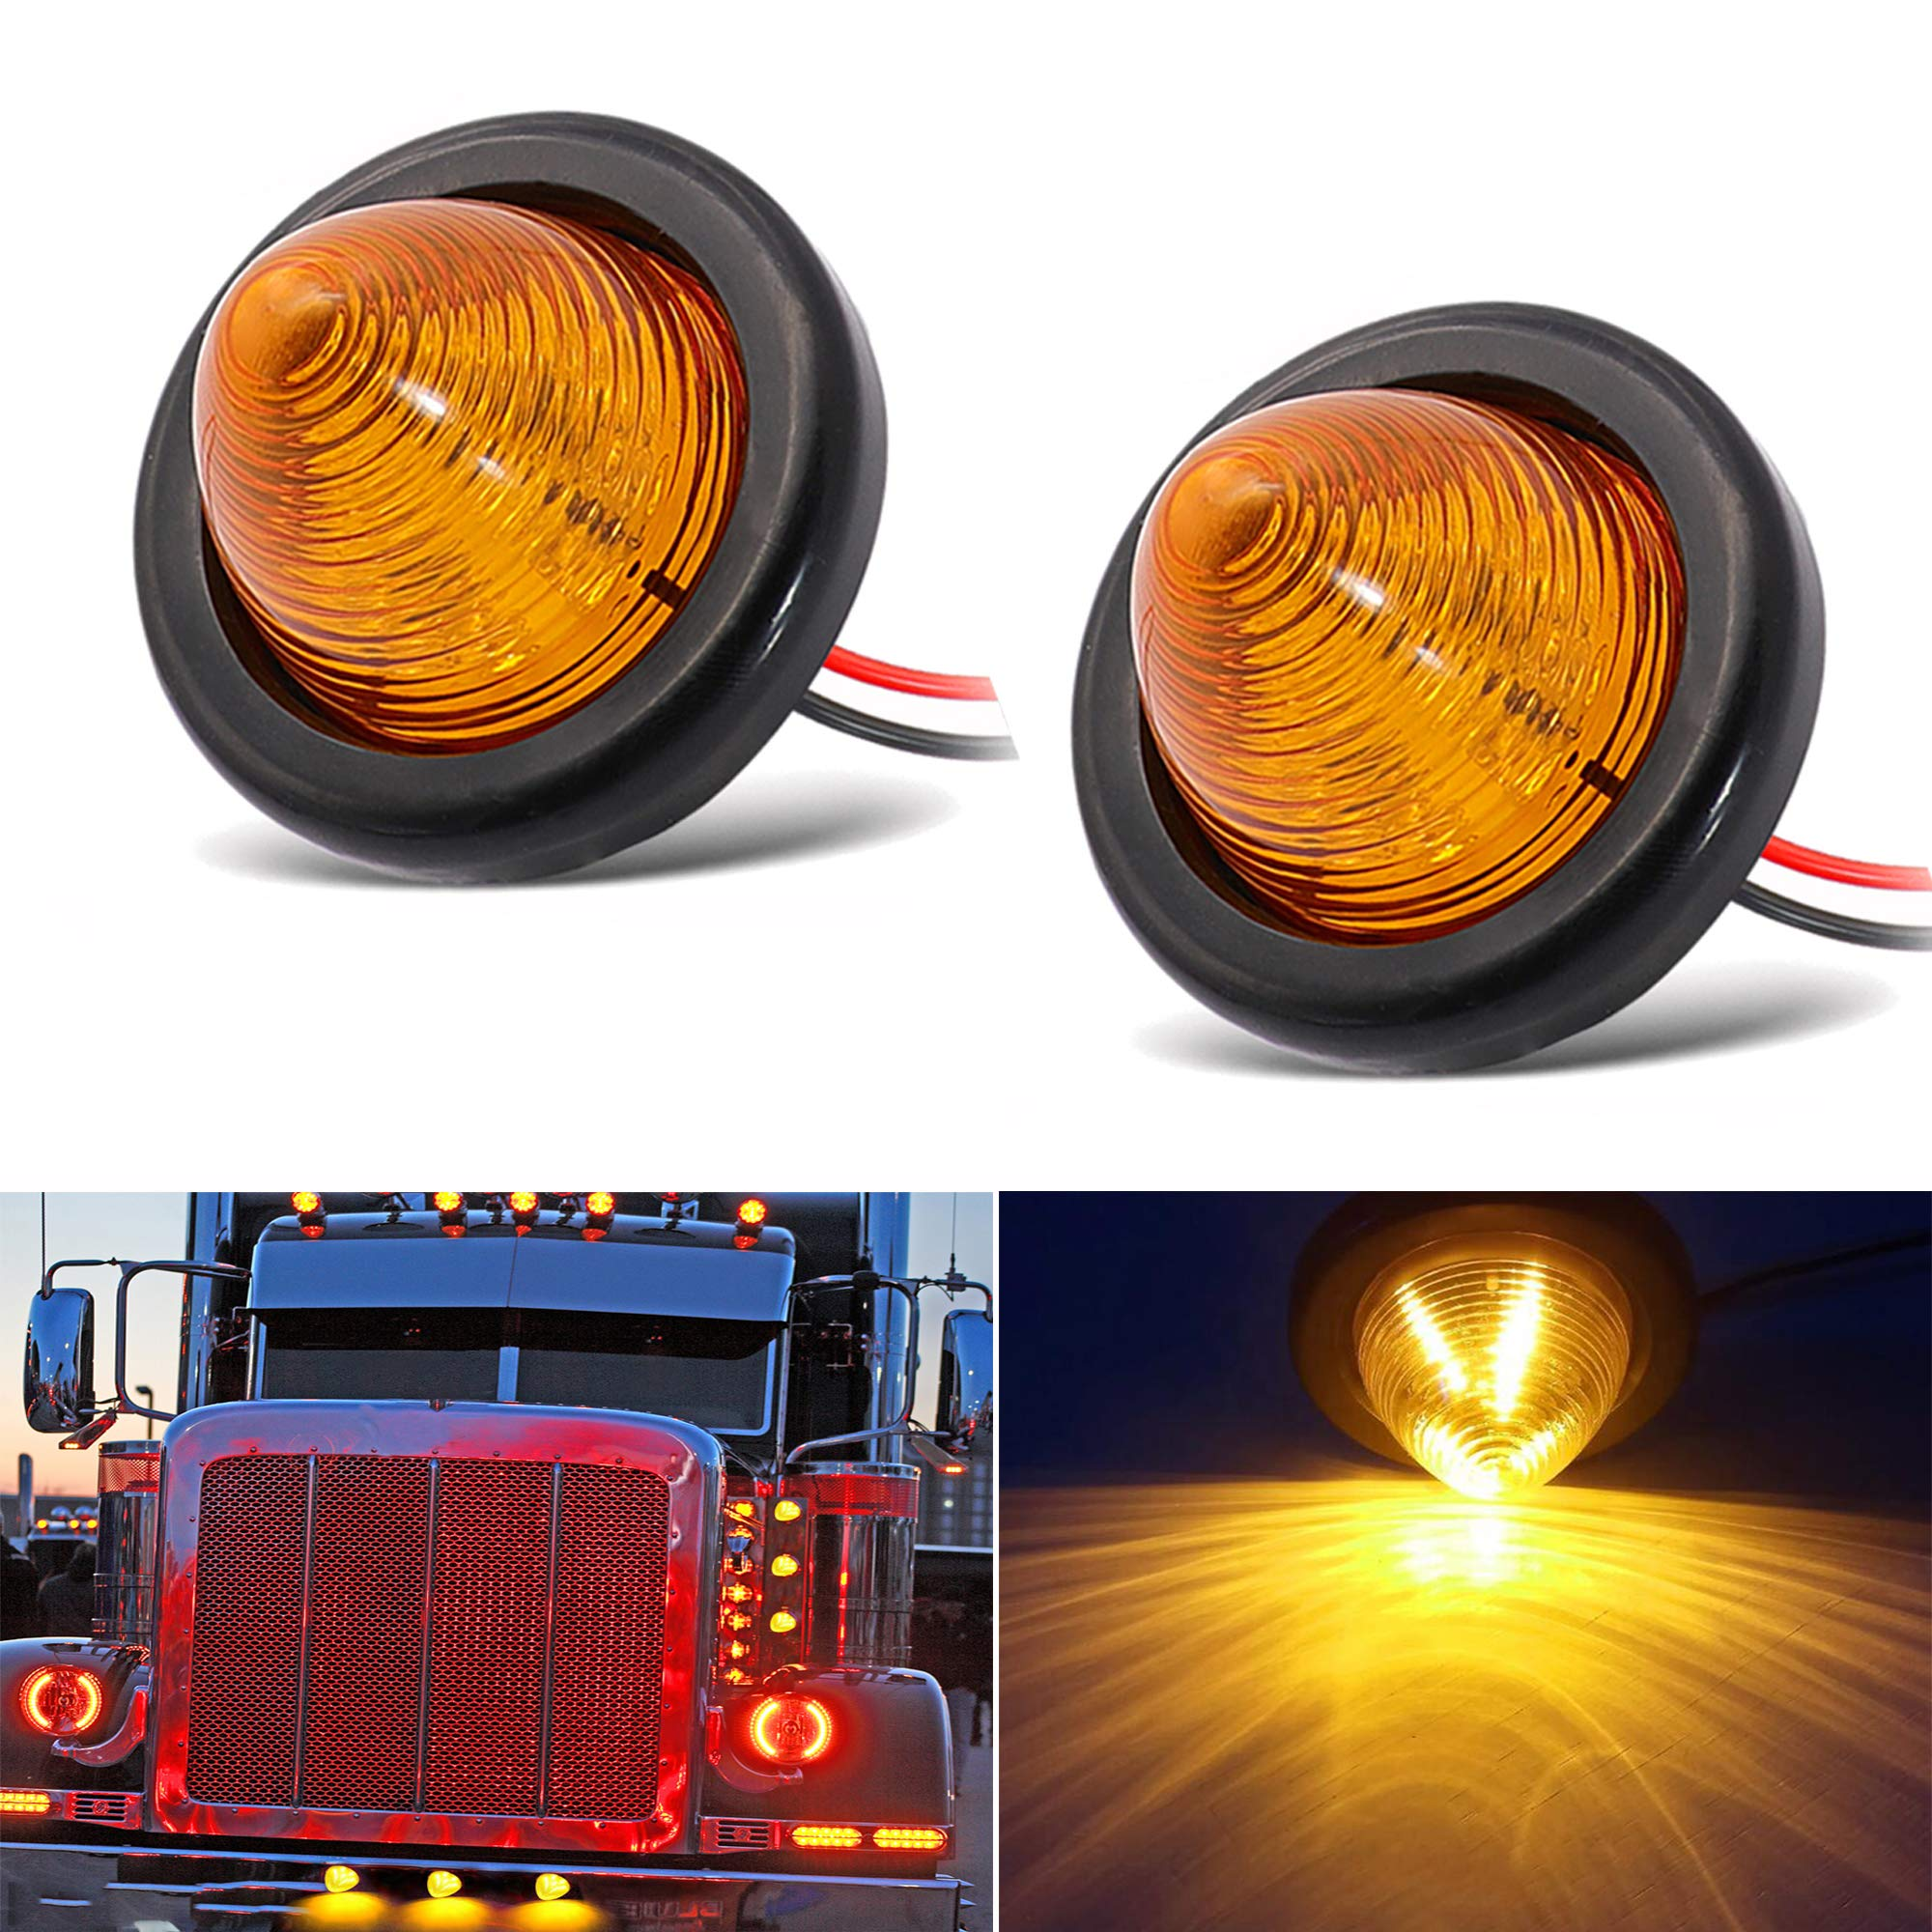 NBWDY 2Pcs 2in Amber Beehive Cone Light Round Side Marker Light Rear Tracking Light Waterproof Peterbilt 9 Diodes Sealed LED Bullet Marker lights for Truck Trailer Van Pickup Bus Boat RV SUV Jeep